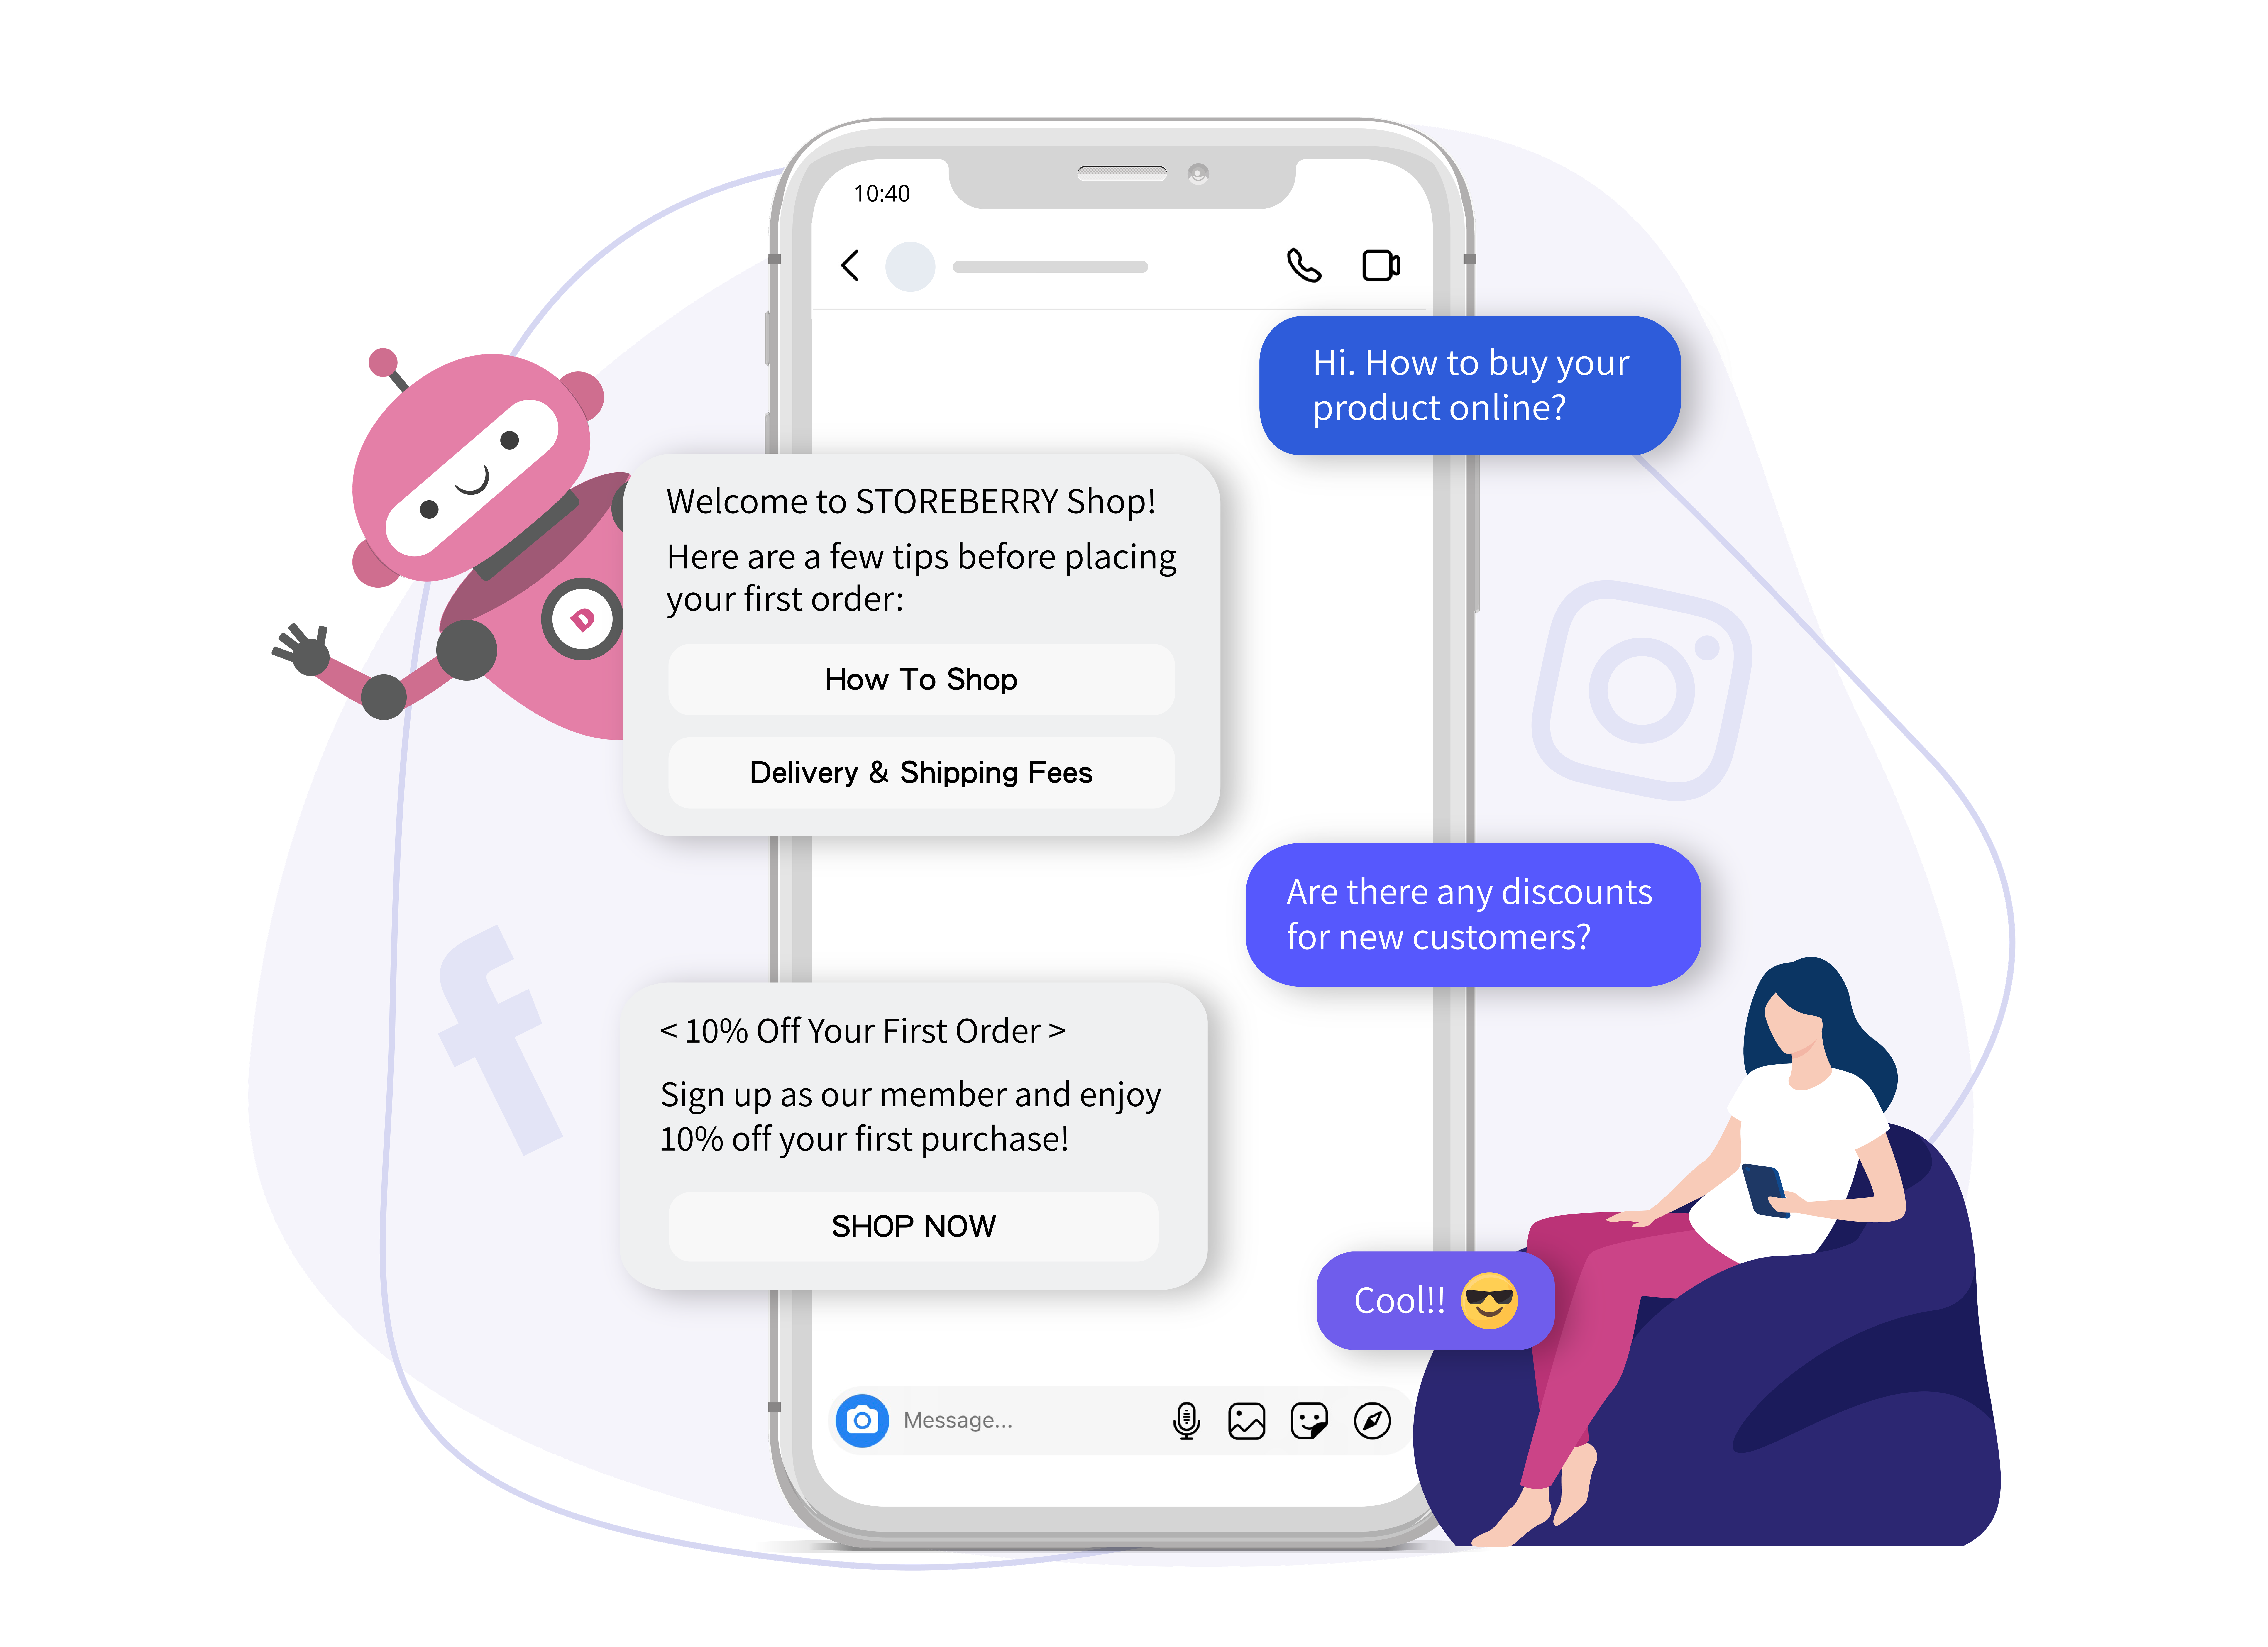 7 x 24 Chatbot David helps to catch up conversational commerce needs